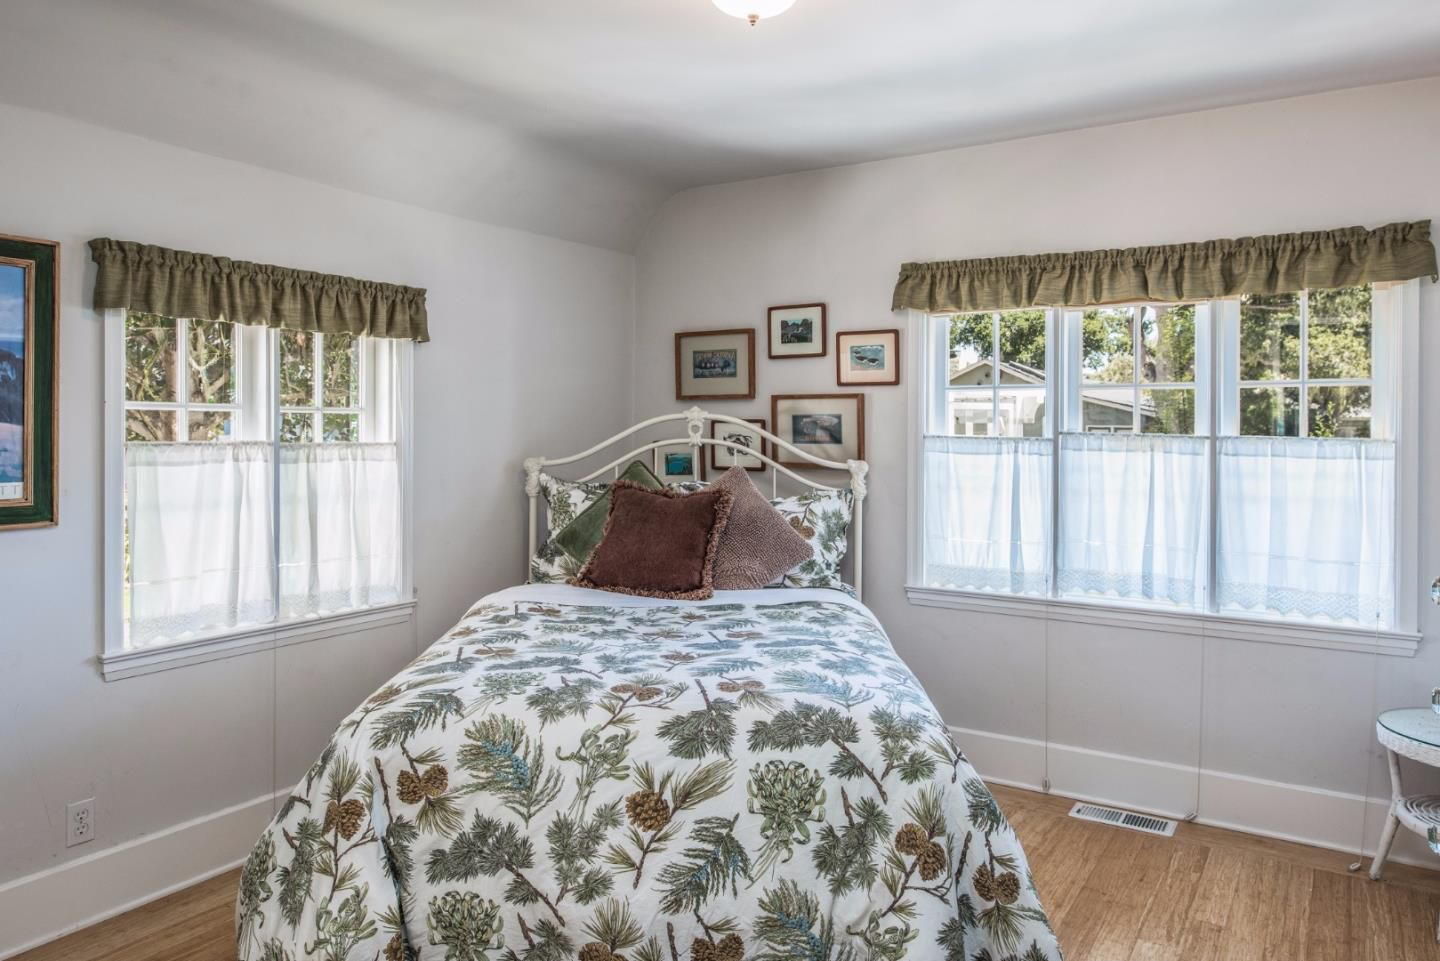 950 14th St, Pacific Grove, CA for sale in Candy Cane Lane neighborhood - second bedroom